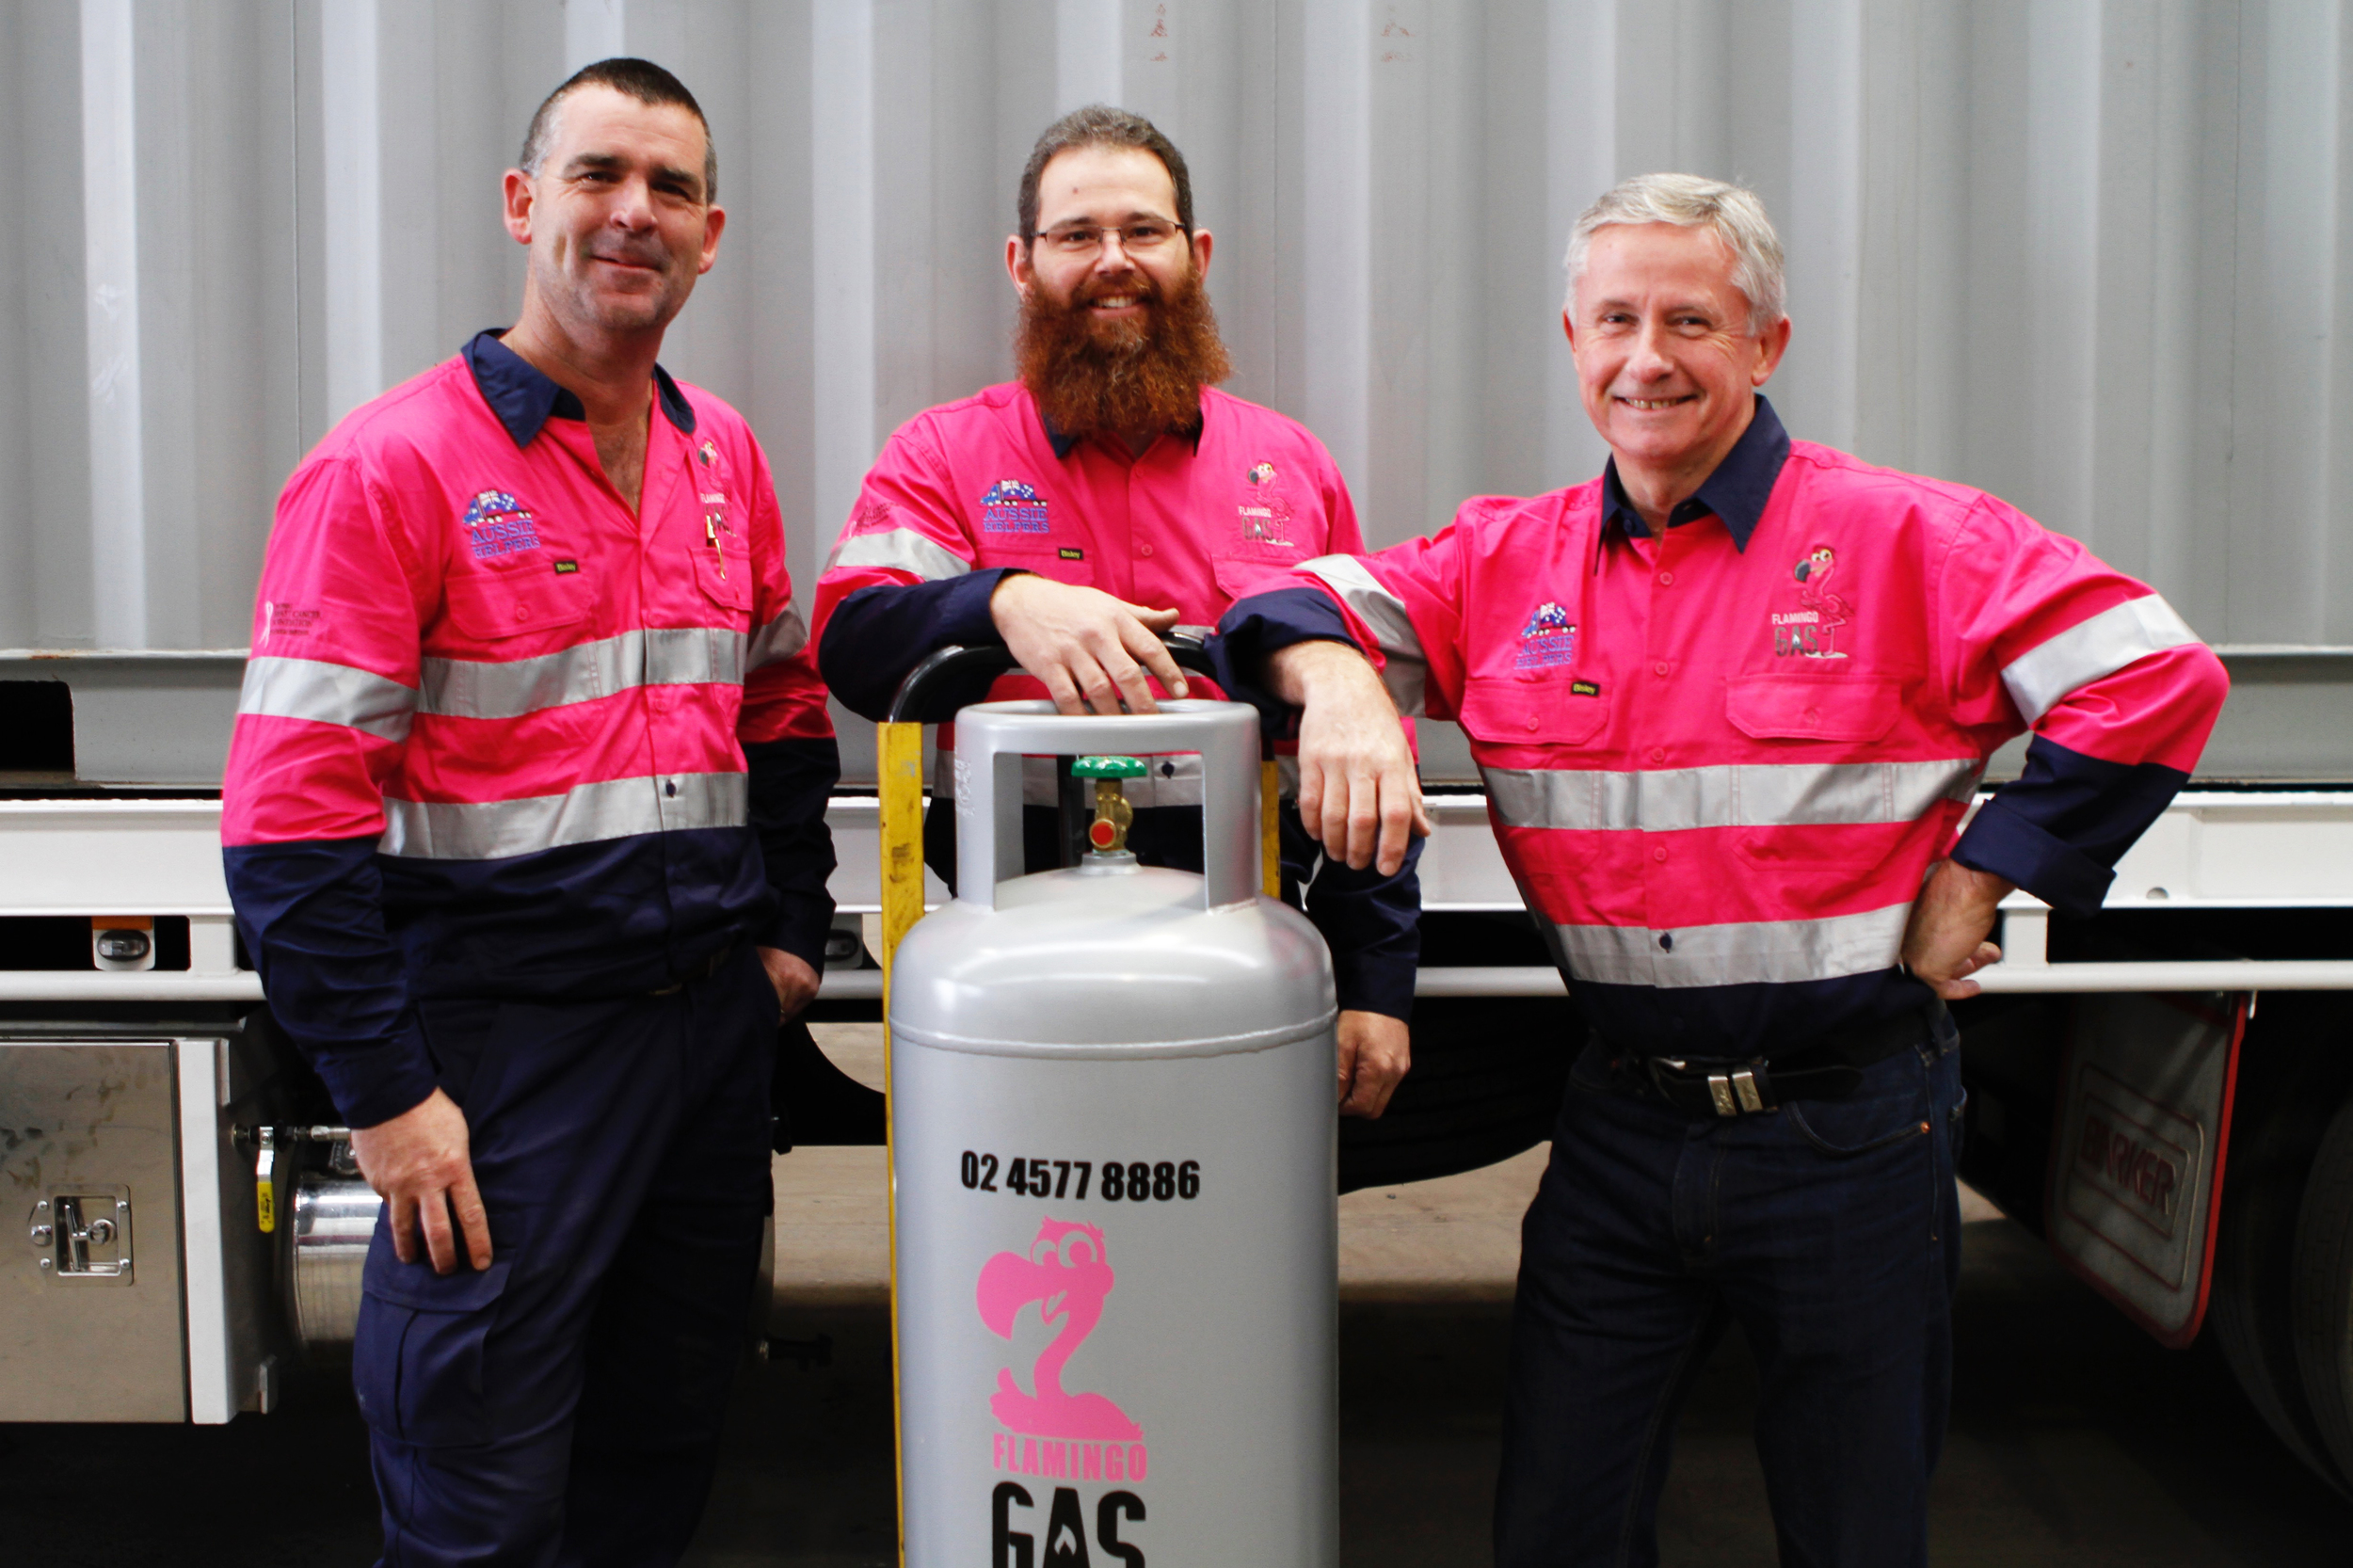 Flamingo Gas LPG for Lower Blue Mountains Sydney